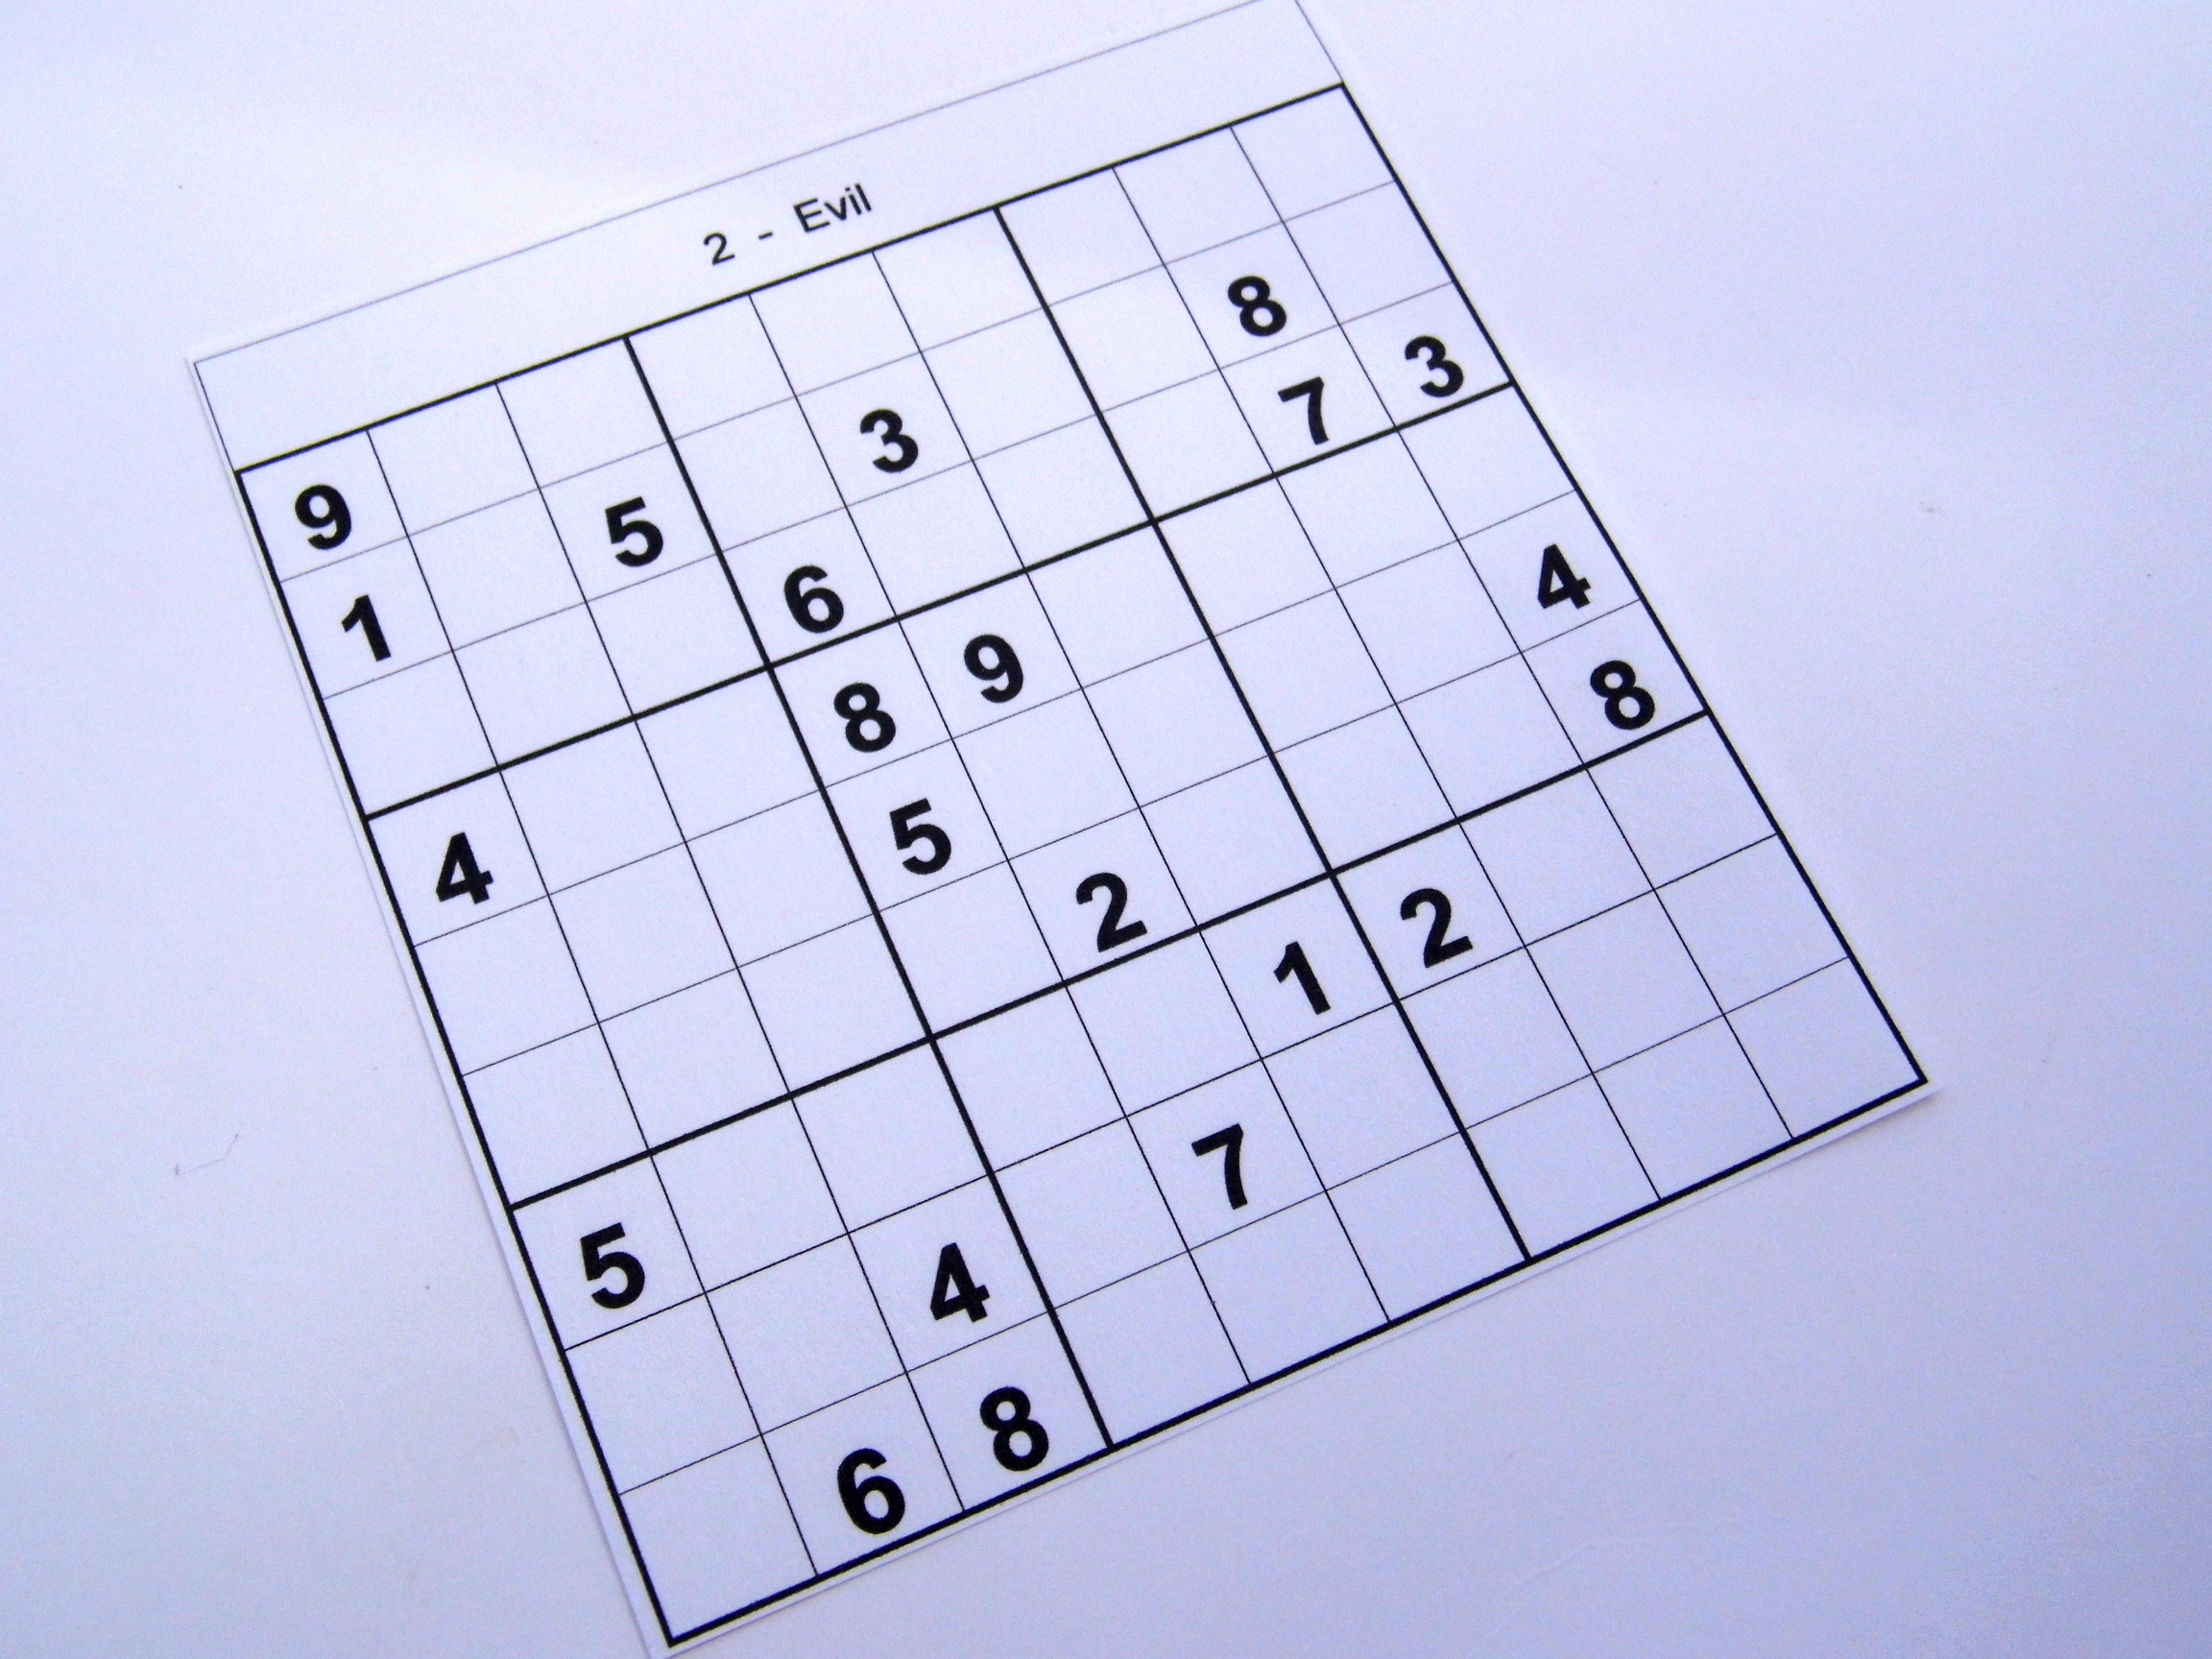 Archive Evil Puzzles – Free Sudoku Puzzles - Free Printable Sudoku 6 - Printable Sudoku Puzzles 8 Per Page